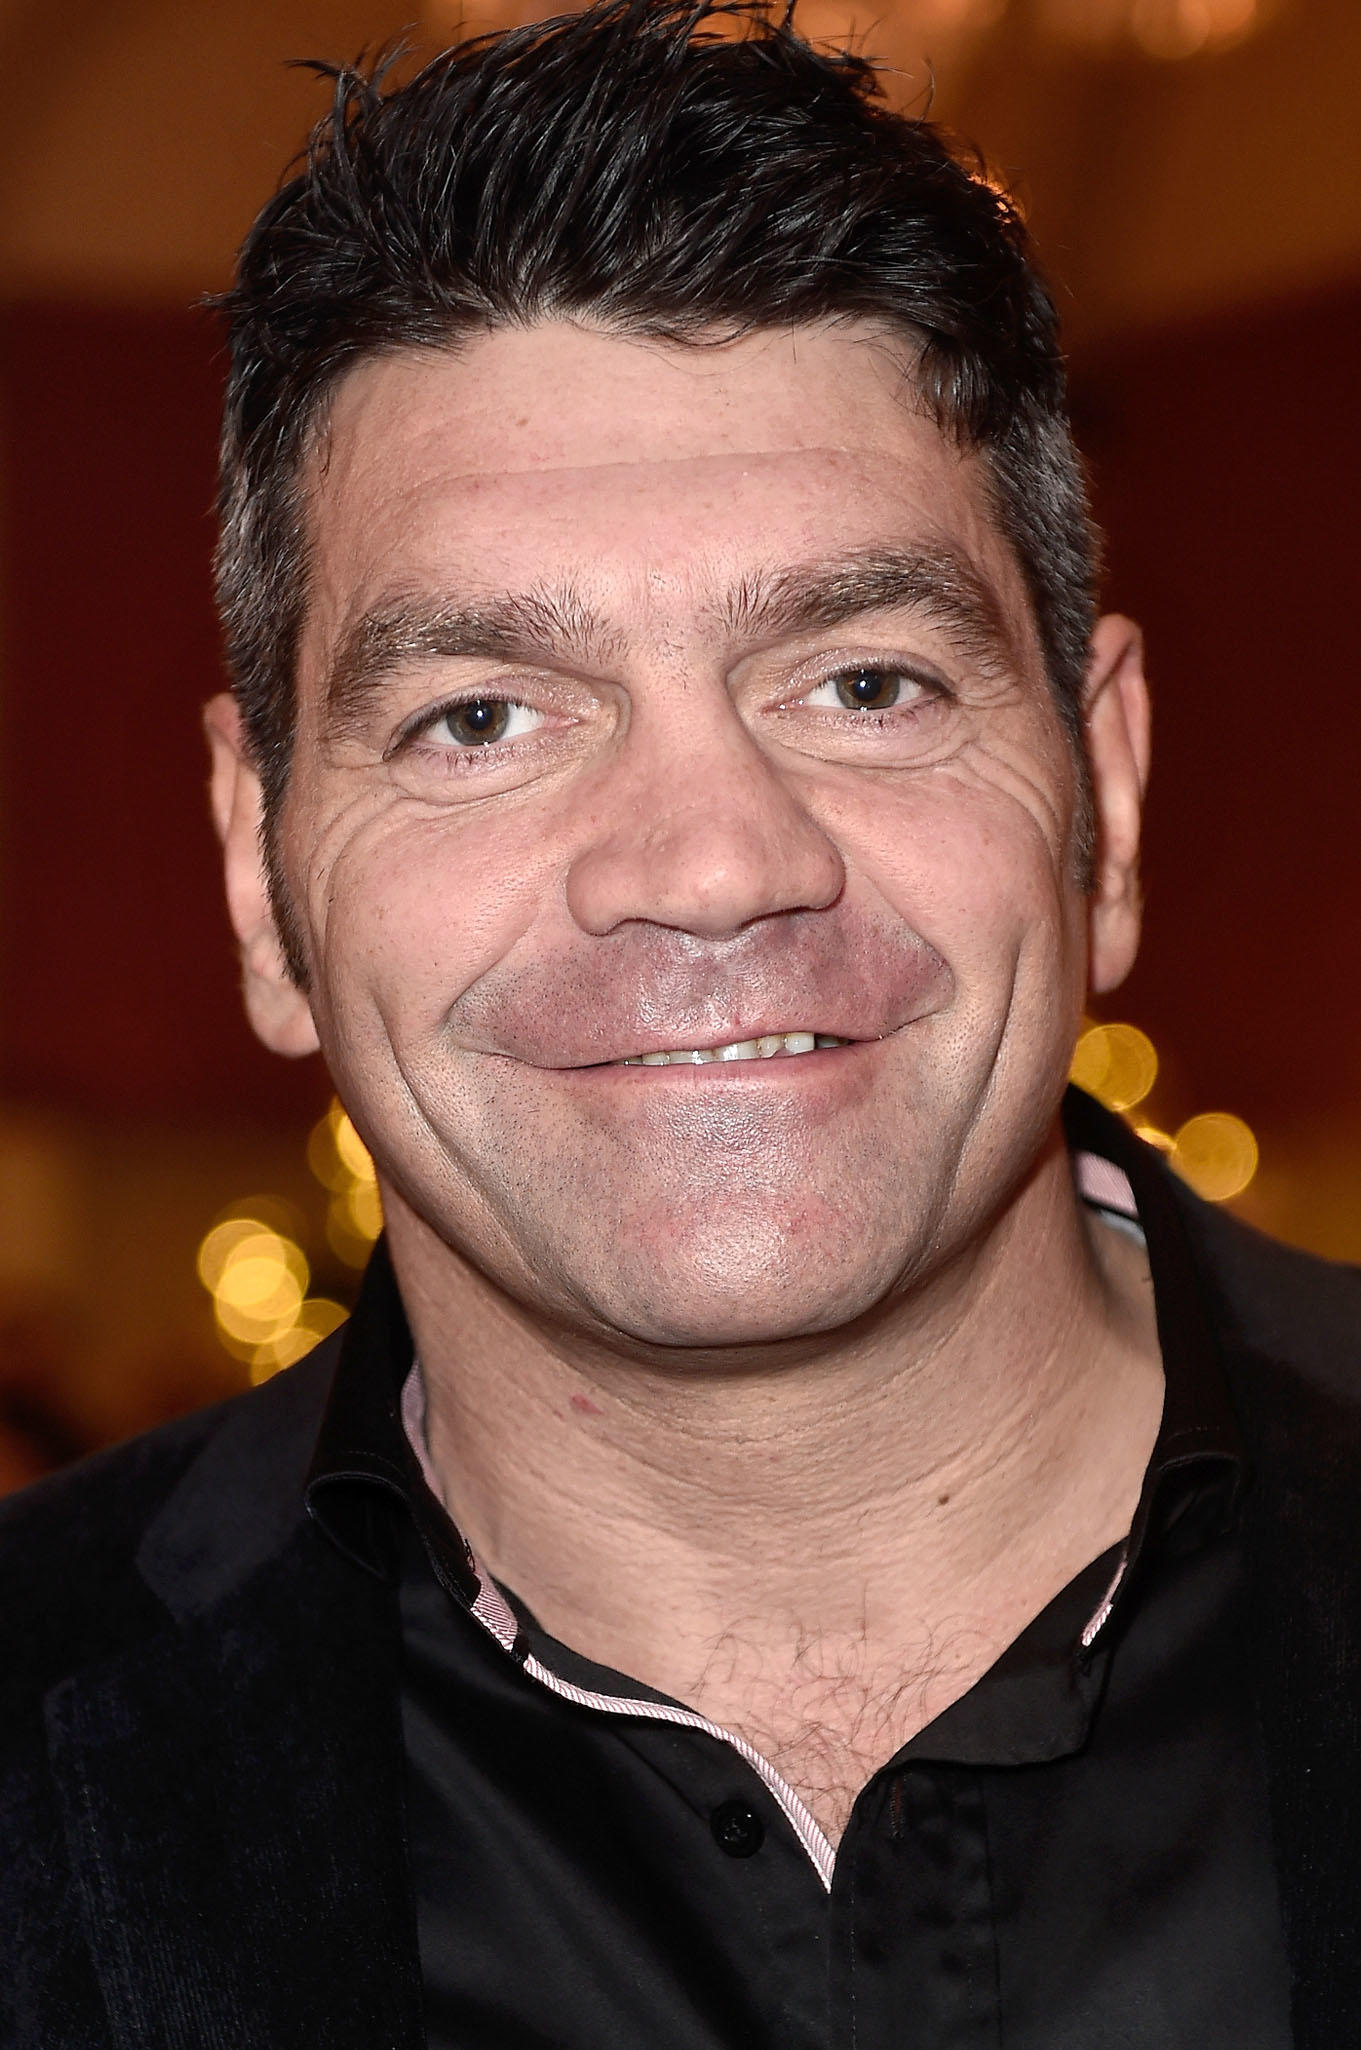 Spencer Wilding at the National Youth Theatre fundraiser in London.